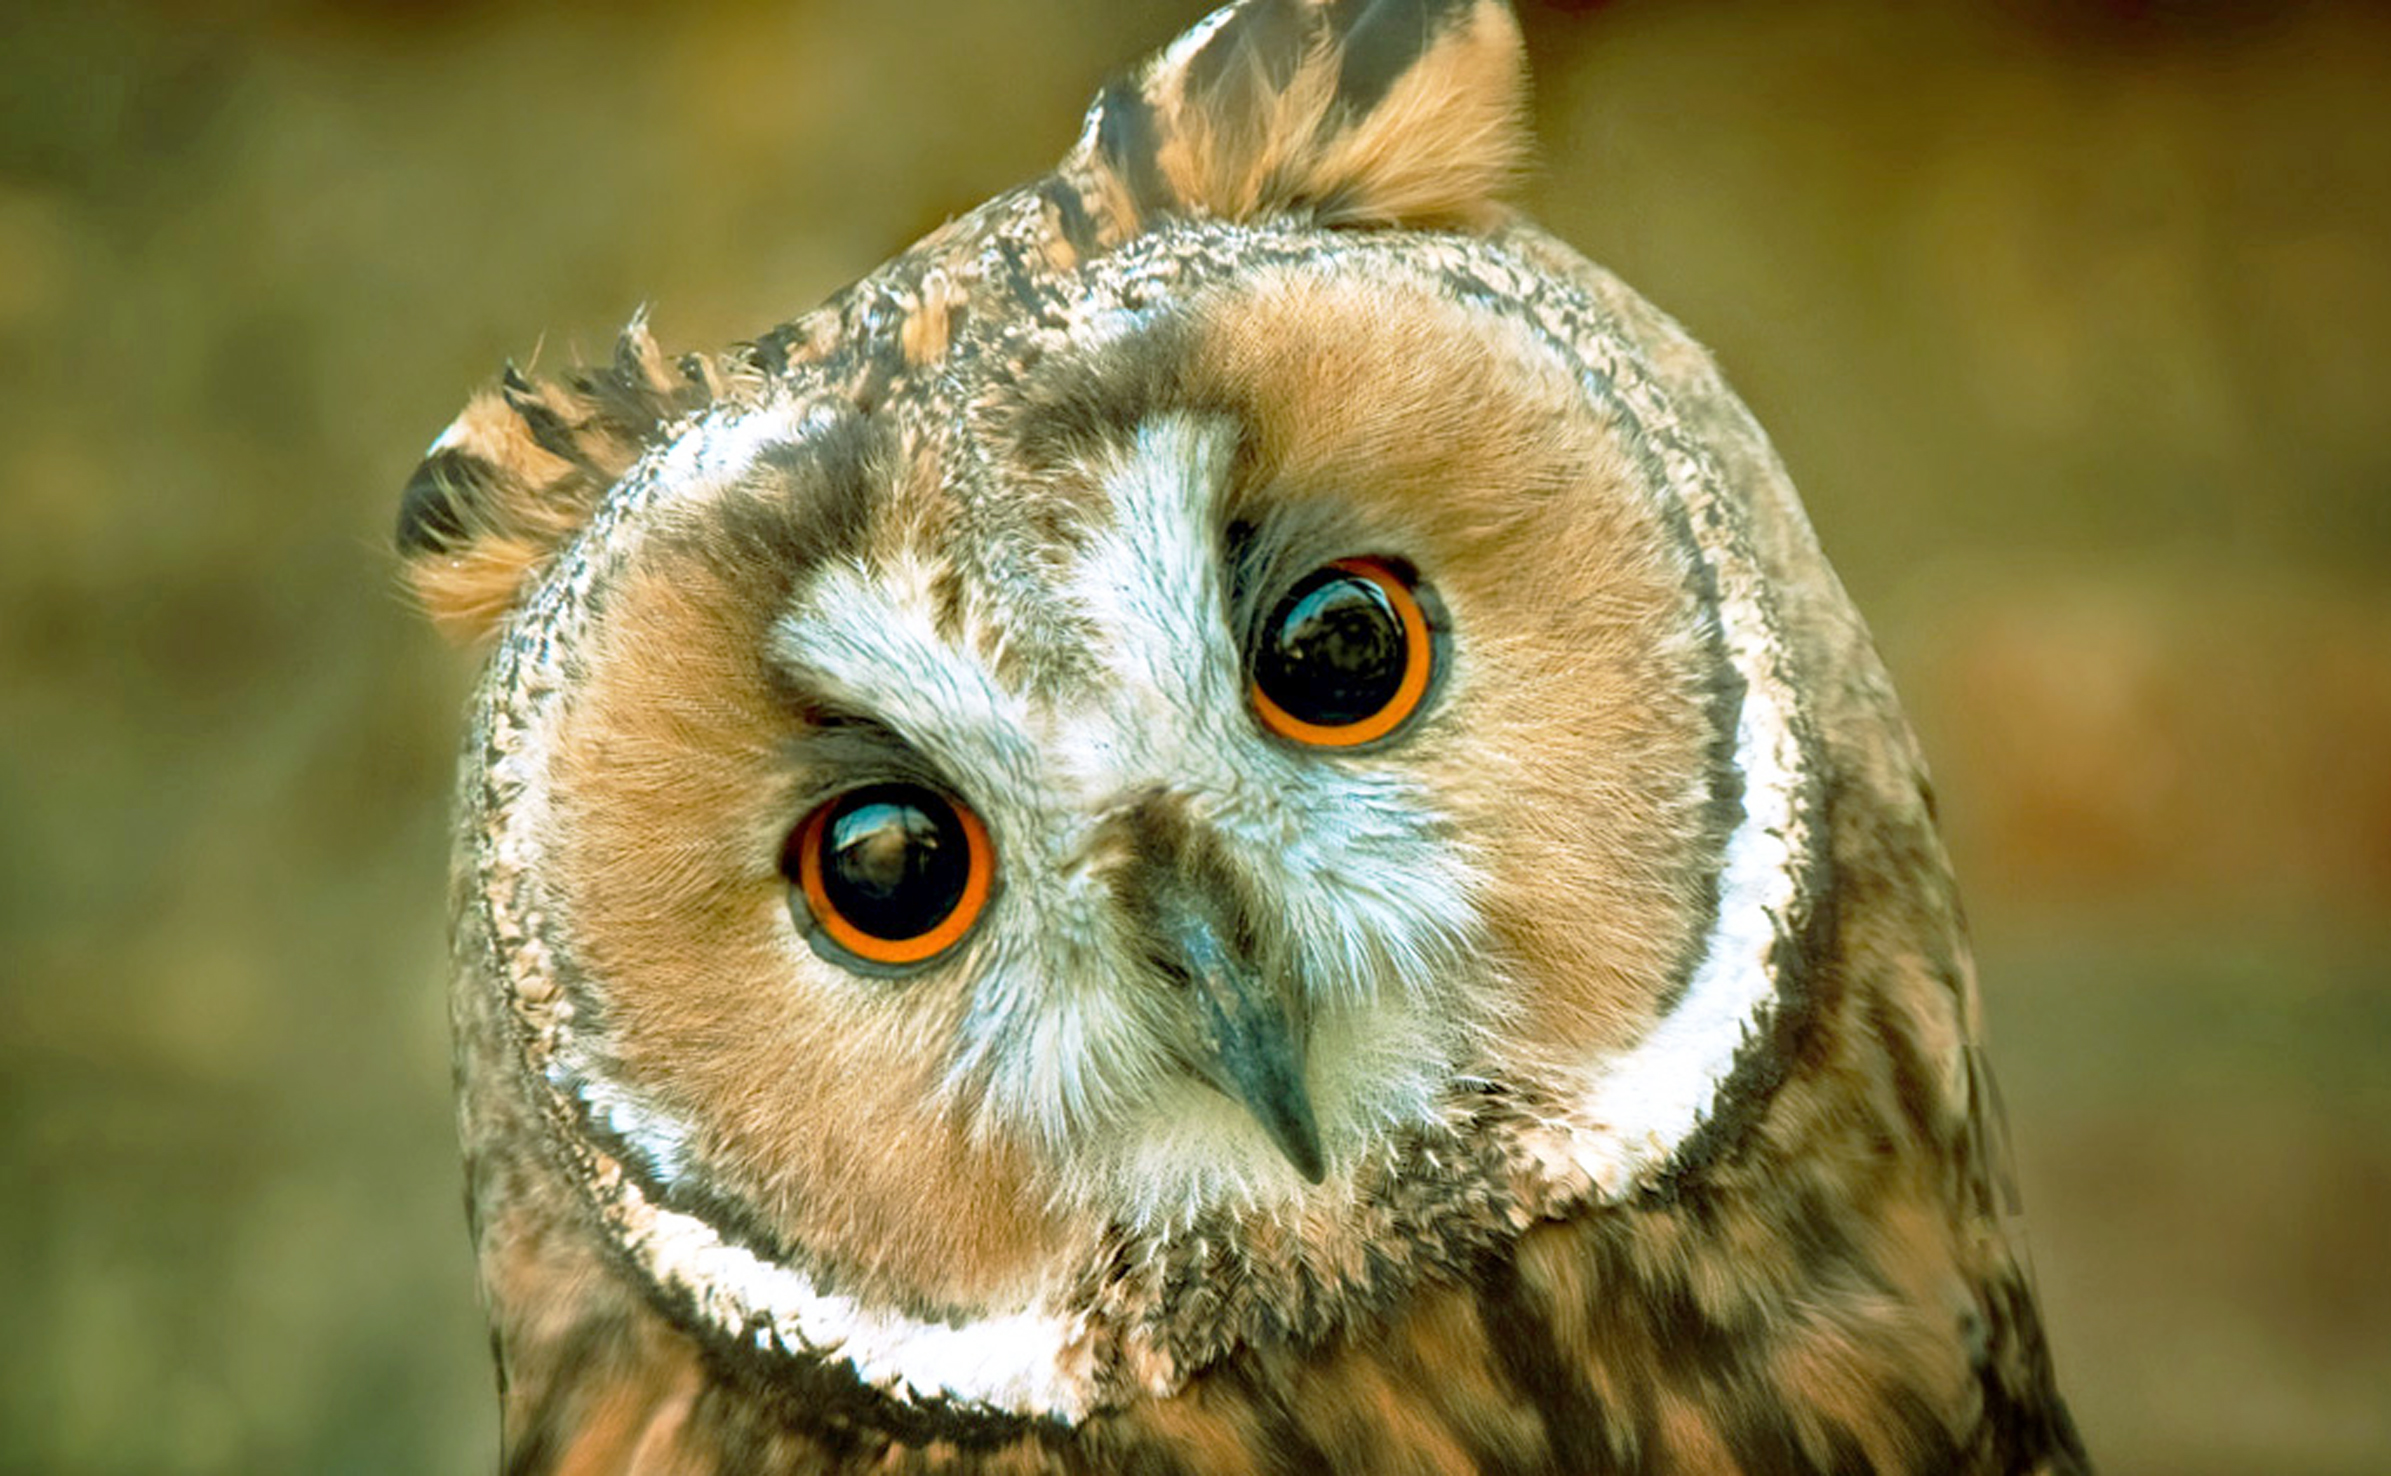 Portrait of an owl in the zoo